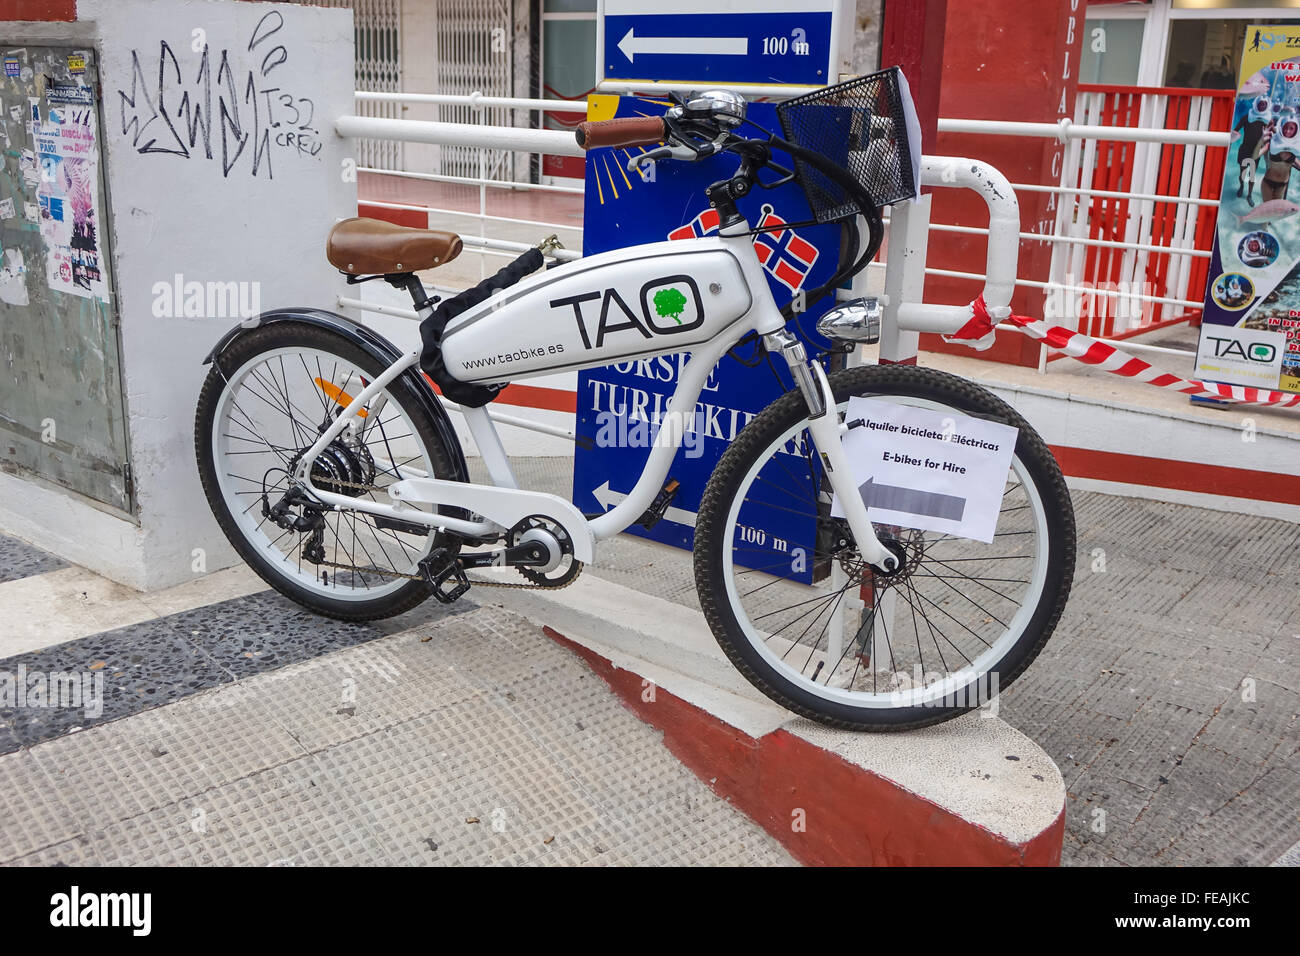 Electric Bike Hire Stock Photos Amp Electric Bike Hire Stock